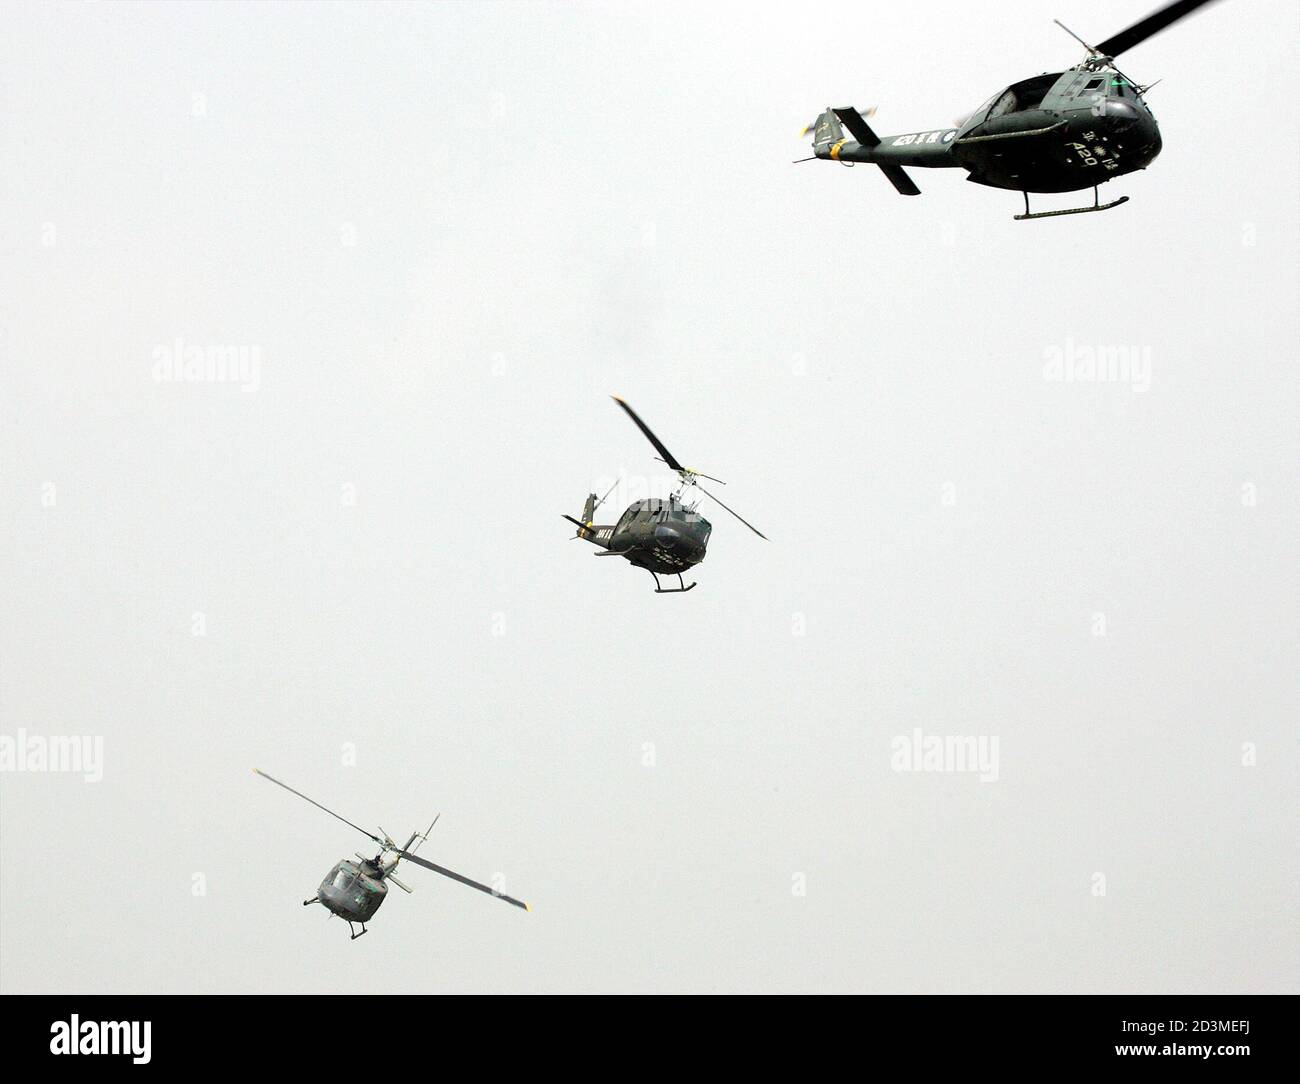 """Taiwanese helicopters simulate as Chinese enemies during anti-airborne exercise at CCK air base in Taichung.  Taiwanese helicopters simulate as Chinese enemies during an anti-airborne exercise at the CCK air base in Taichung, central Taiwan, July 27, 2005. The military exercise, involving simulated repulsion of airborne assaults on an airbase, is part of Taiwan's annual """"Han Kuang"""", or Chinese Glory, exercises aimed at testing the military's readiness against a Chinese invasion. Taiwan President Chen Shui-bian warned on Tuesday that arch-rival China's growing missile build-up not only posed a  Stock Photo"""